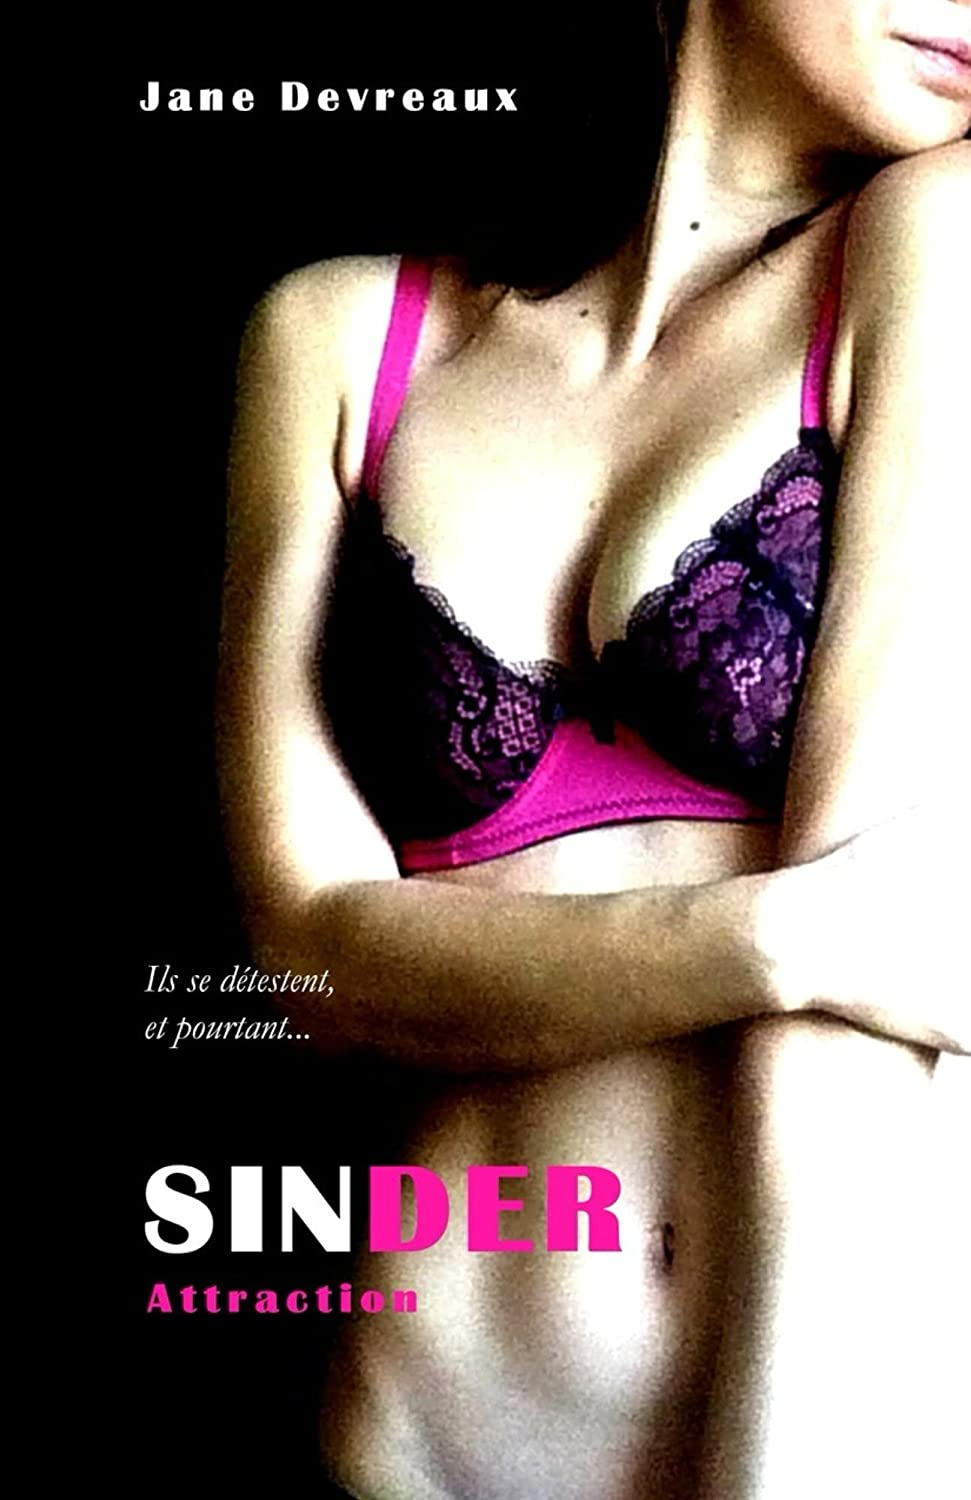 Sinder - Tome 2 : Attraction de Jane Devreaux 71W8HDlpUTL._SL1500_